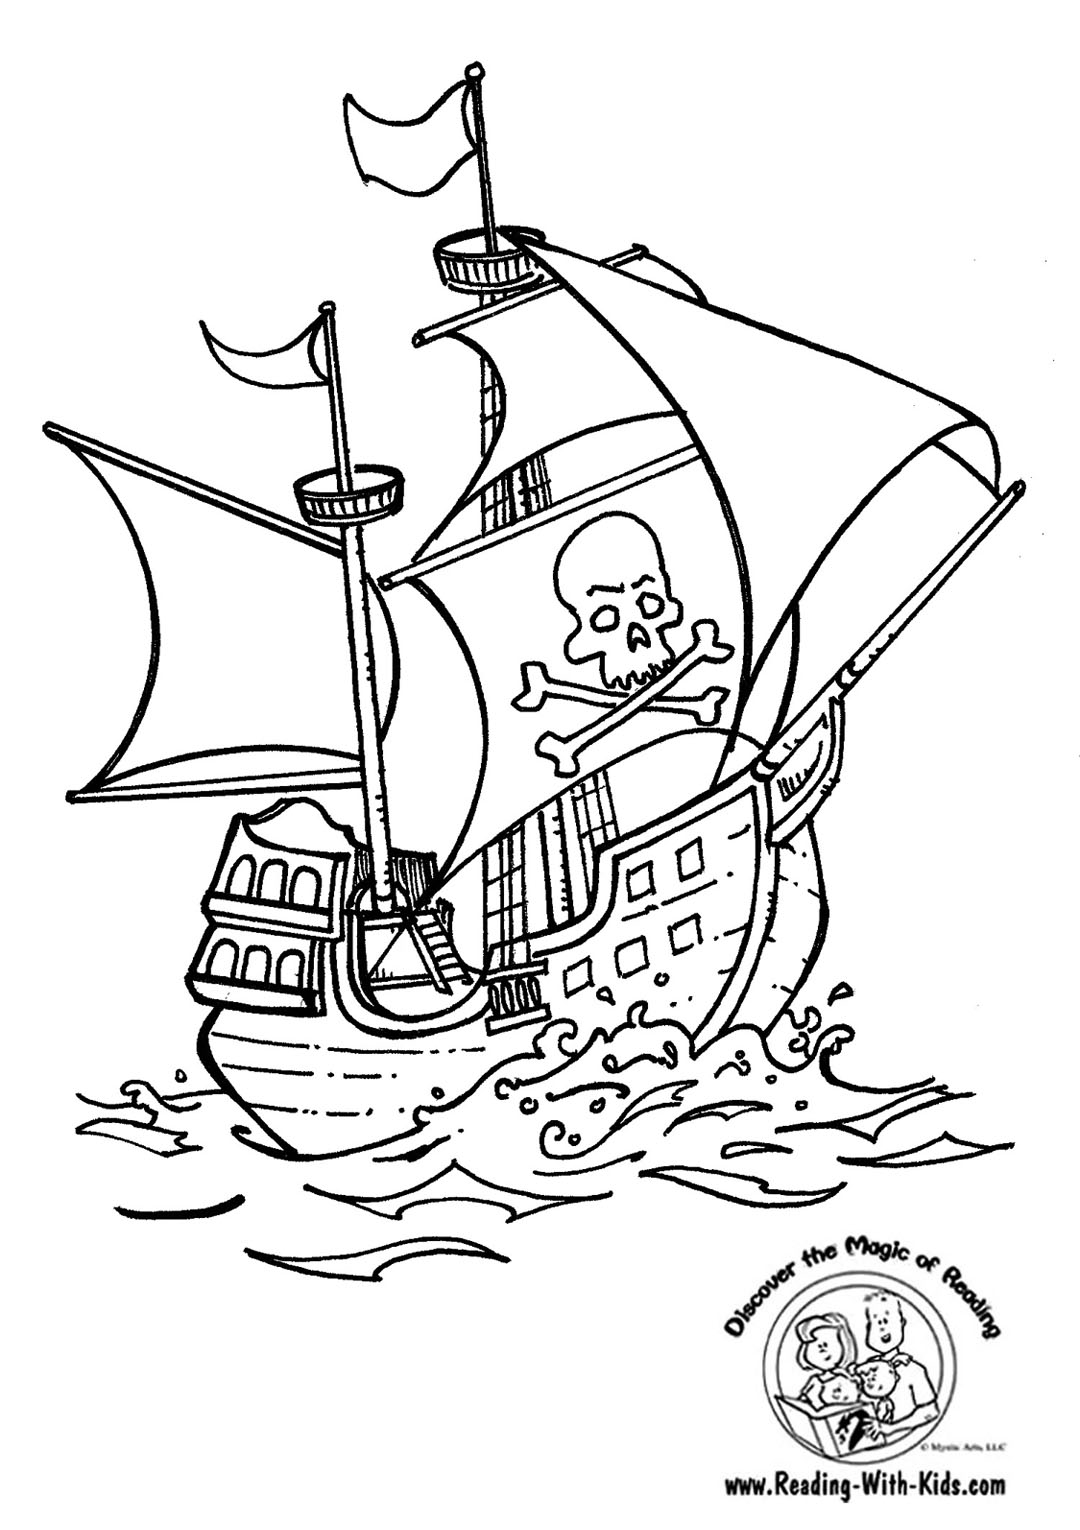 pirate images to color incredible pirate coloring pages gallery photos color pirate images to